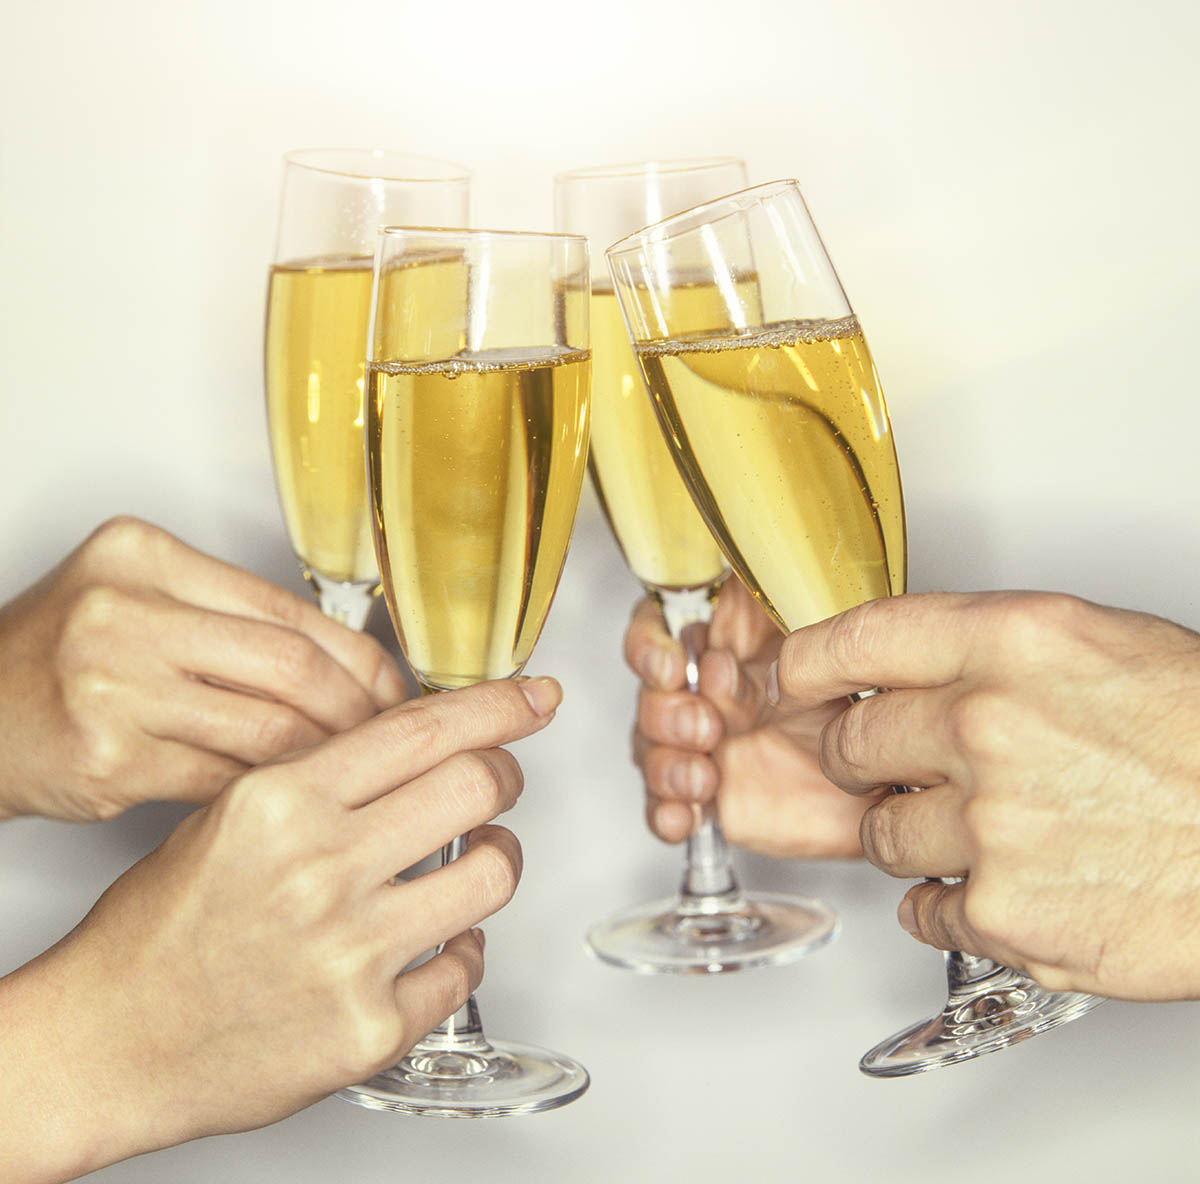 Free stock photo Group of people toasting with champagne